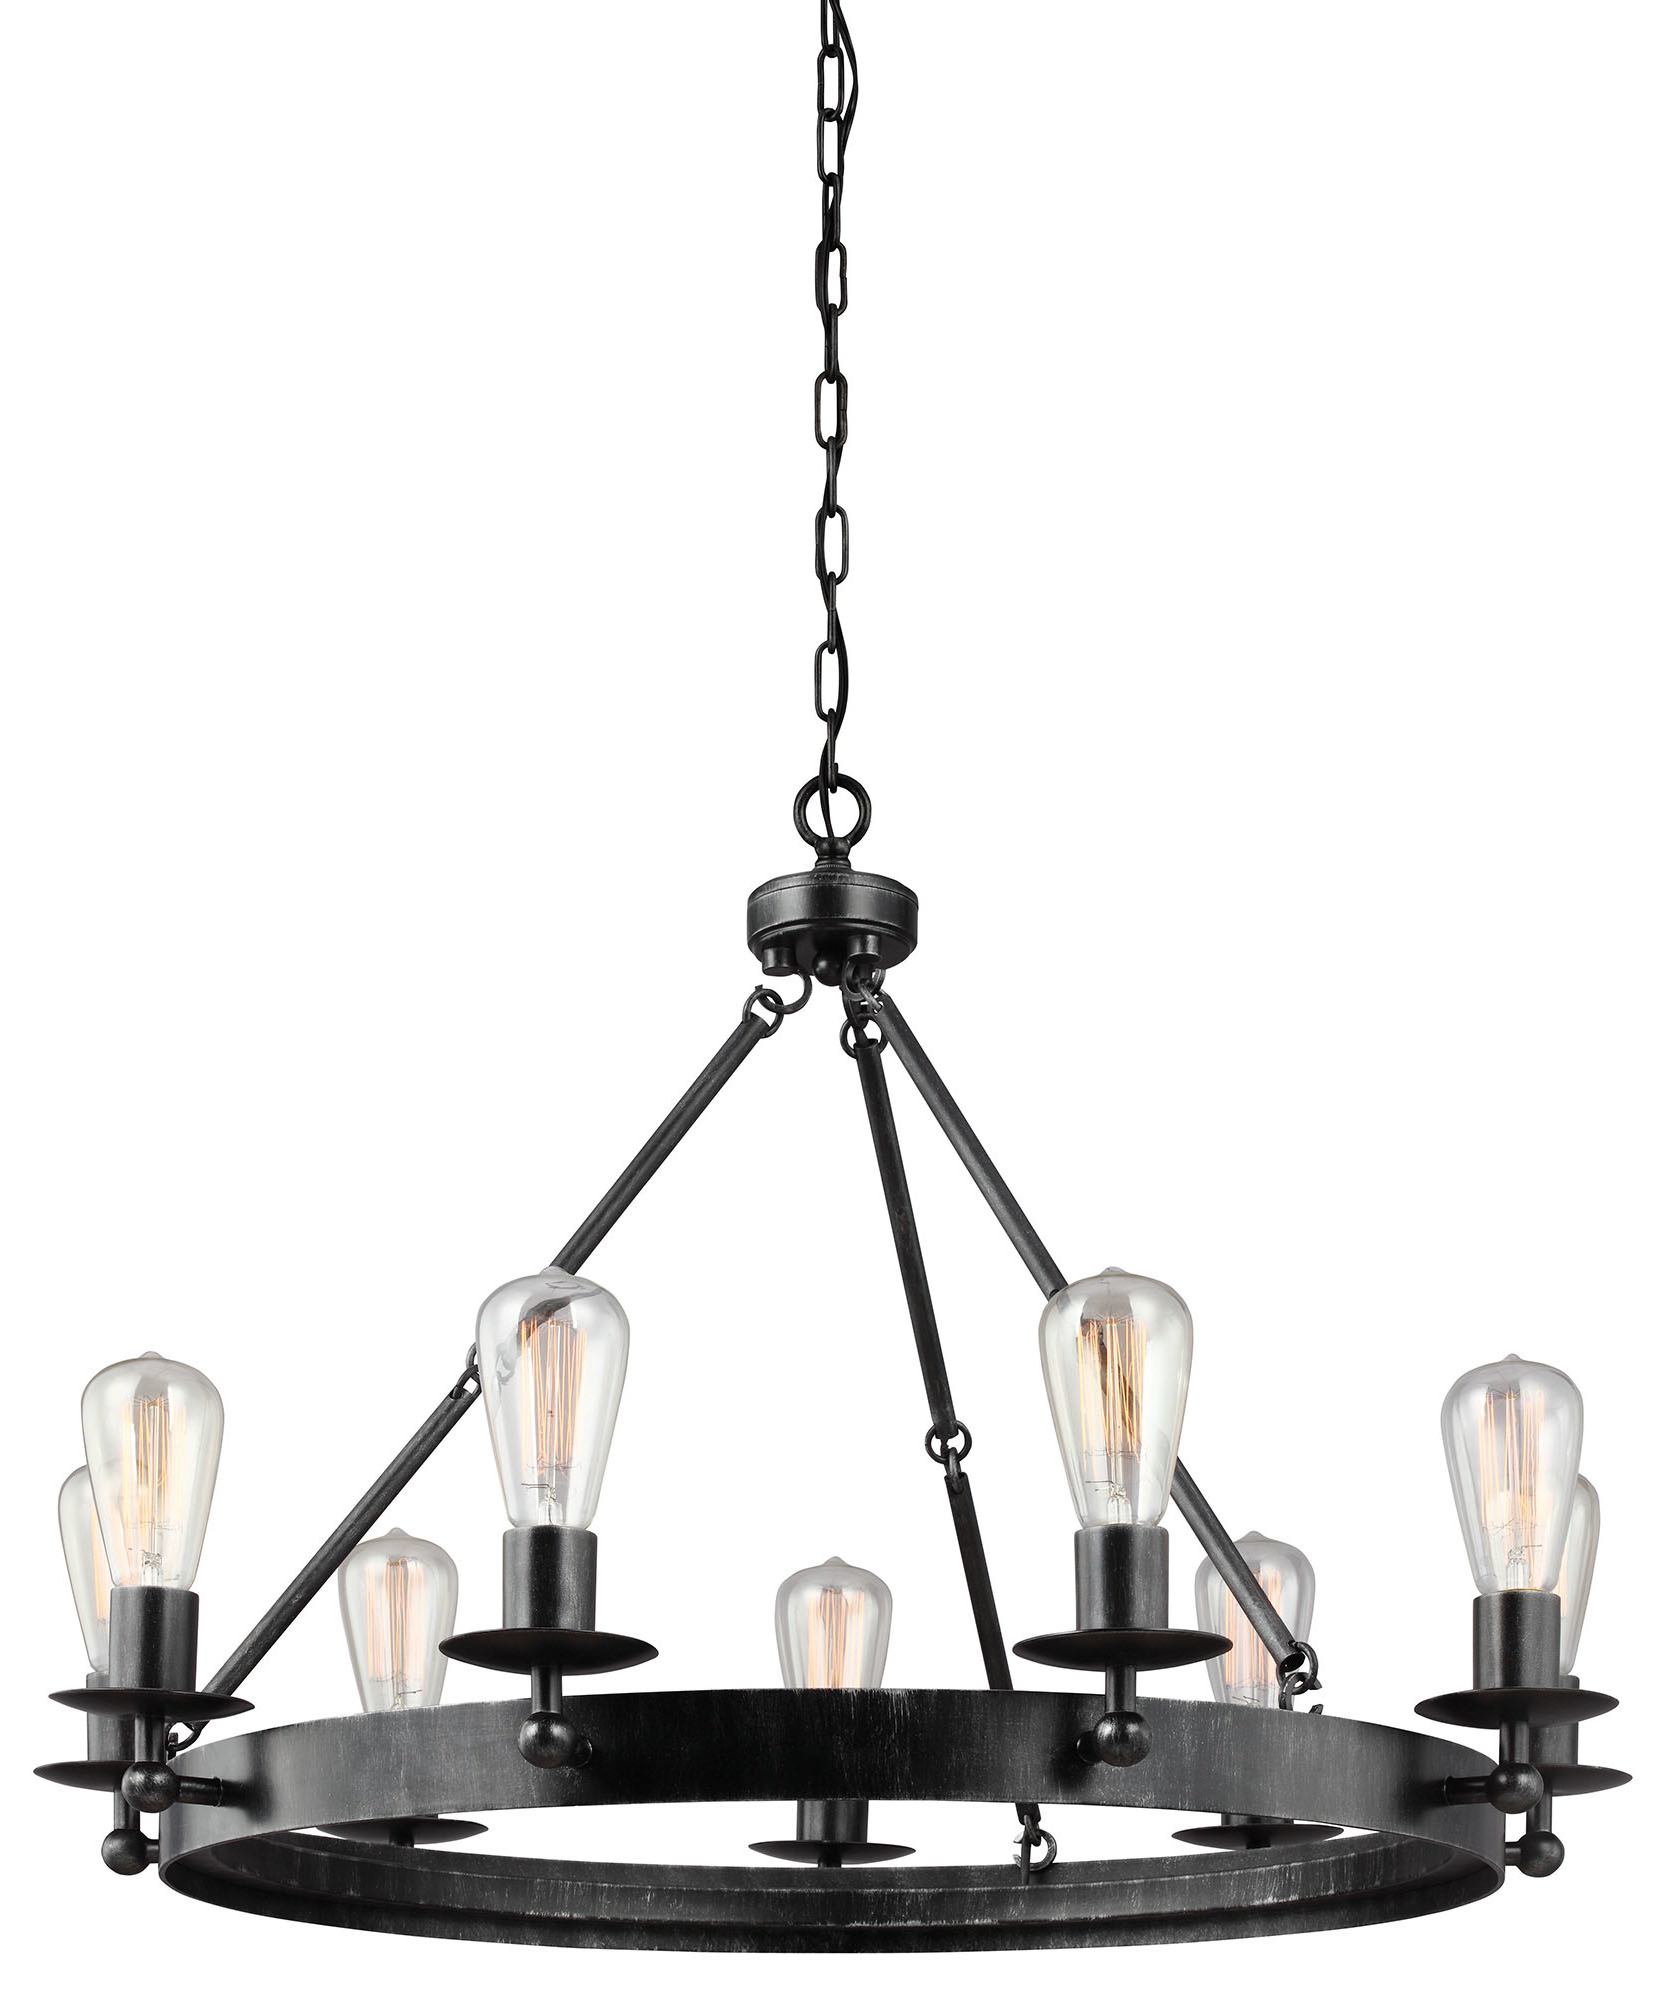 Birch Lane Pertaining To Widely Used Alayna 4 Light Shaded Chandeliers (Gallery 16 of 20)